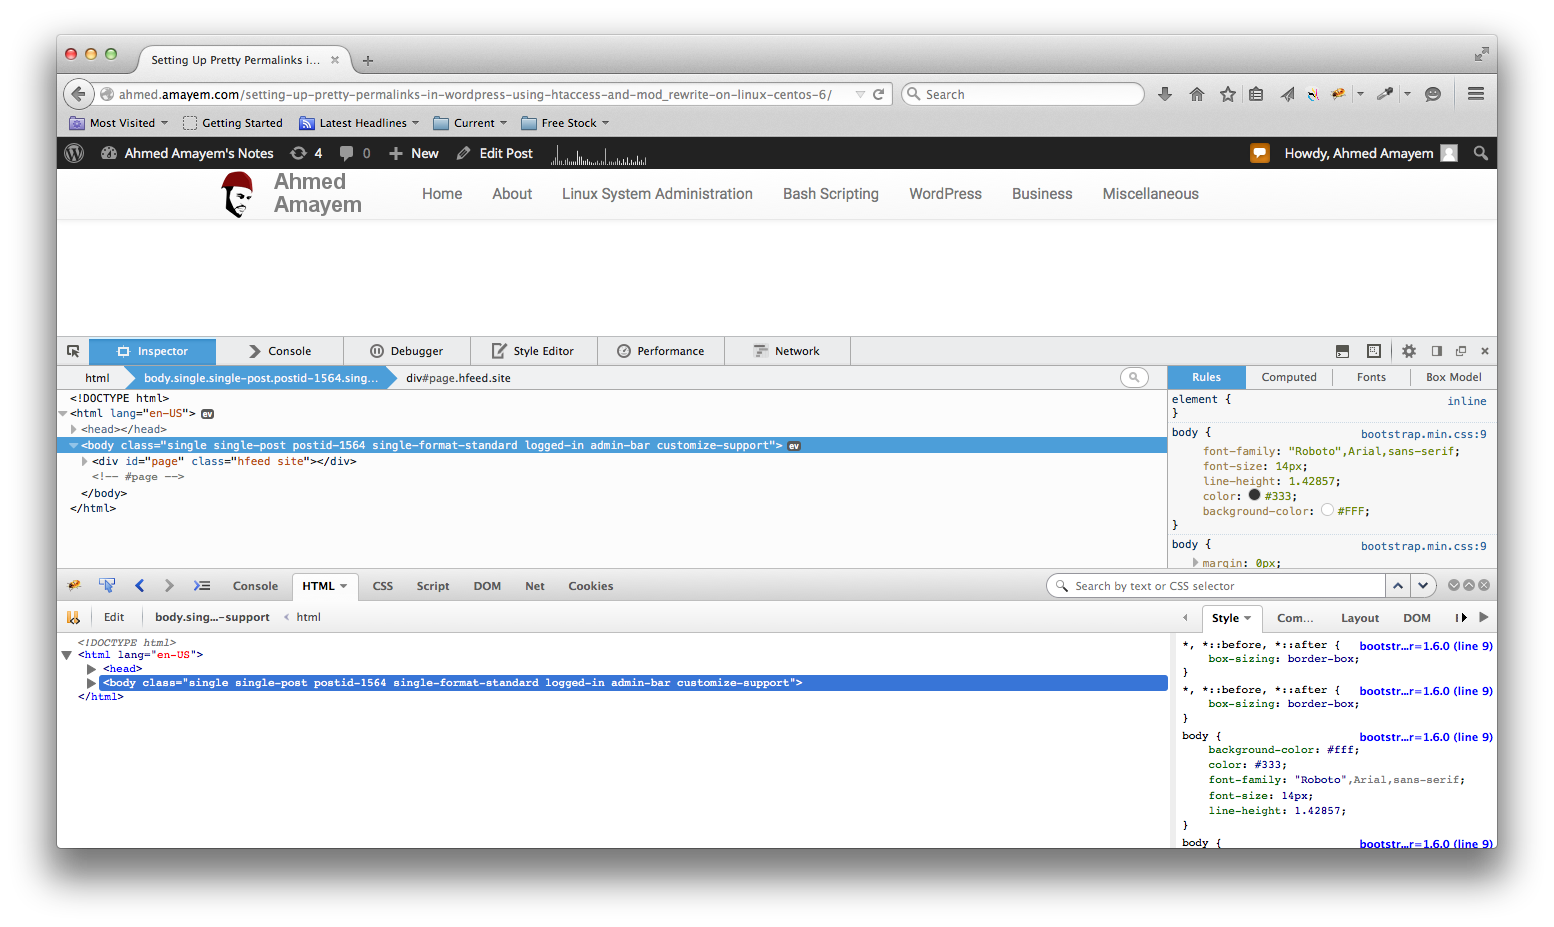 How to Open/Activate Web Developer Tools on Chrome, Firefox and